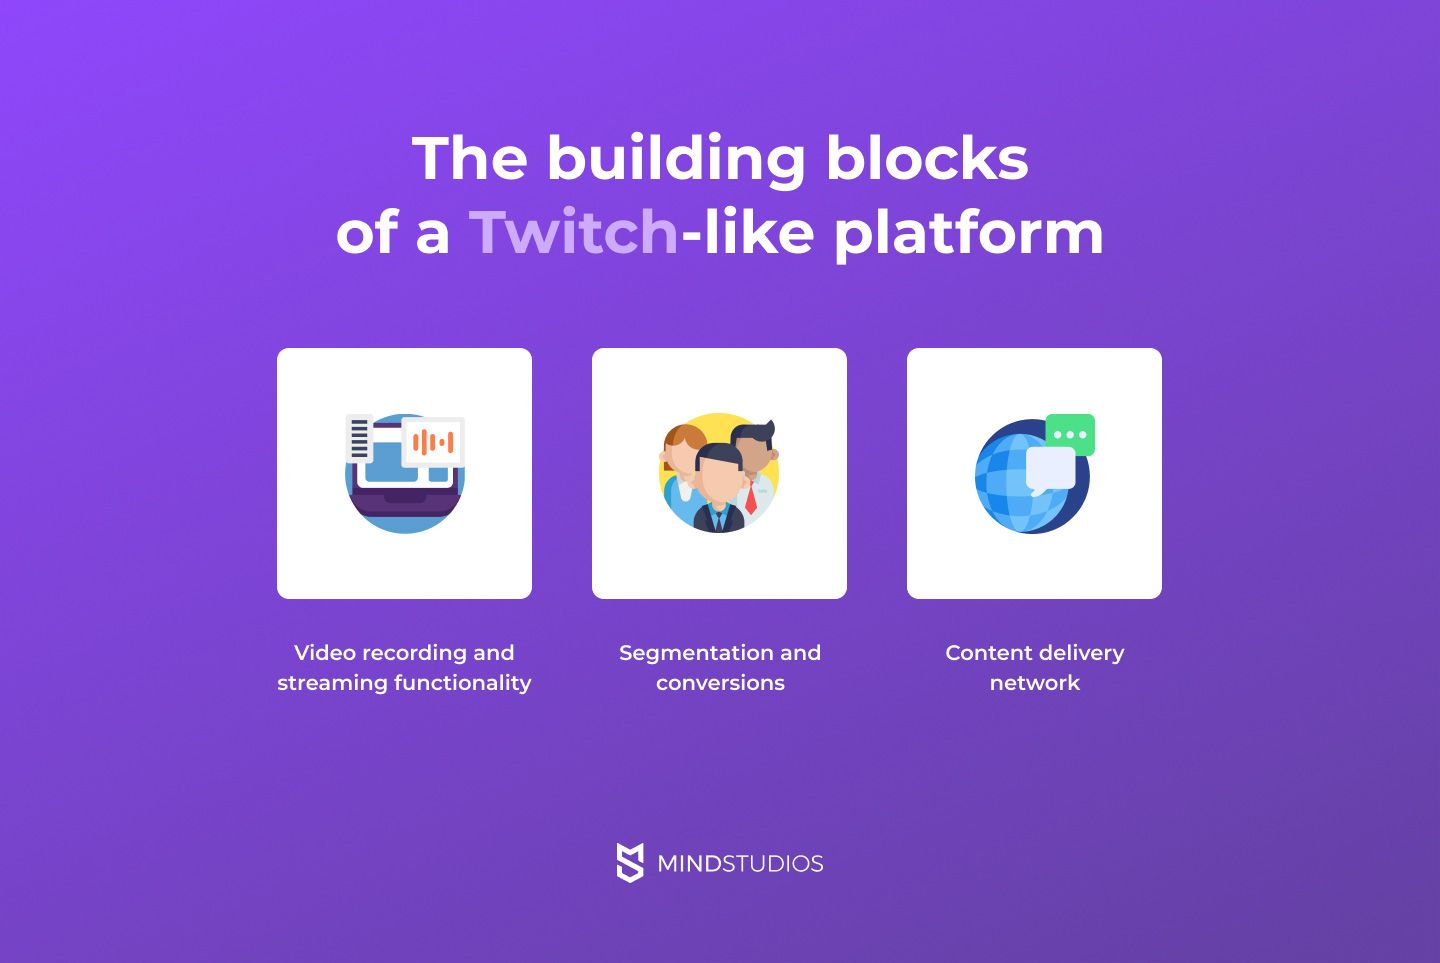 The building blocks of a Twitch-like platform